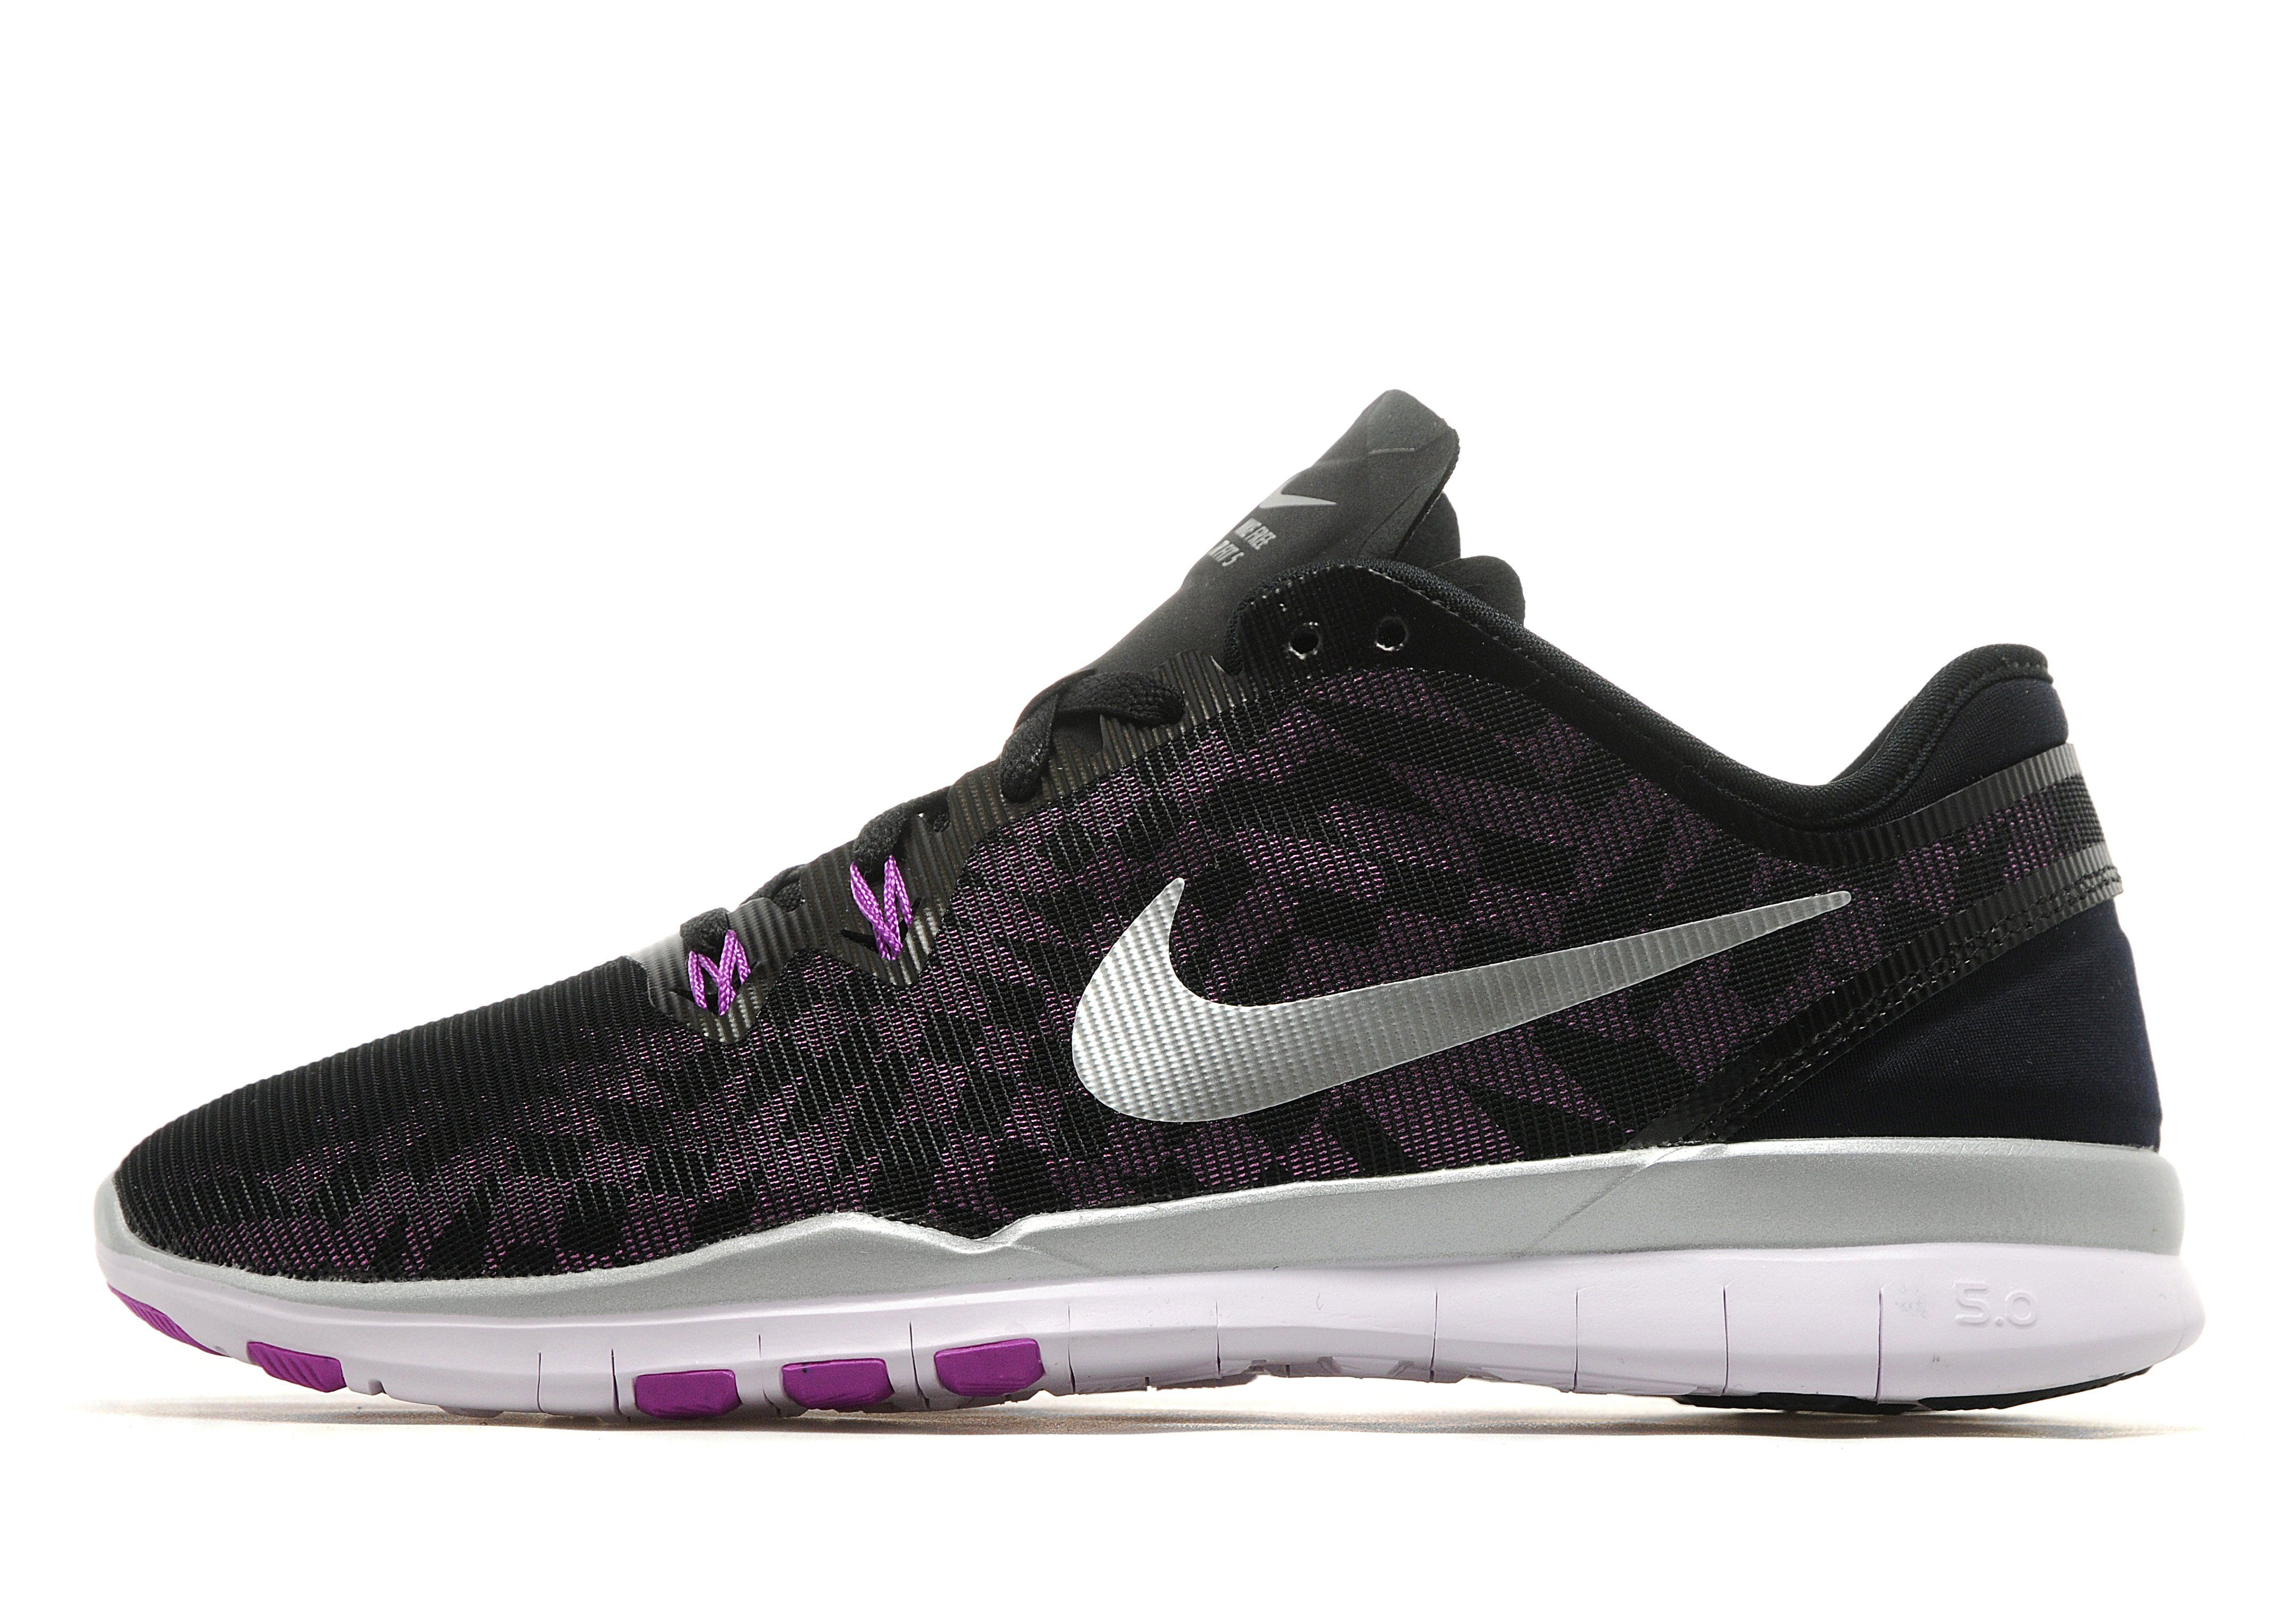 0f94a5d7f823 ... coupon code for nike free run 5.0 womens jd sports 8fd2d 4100f